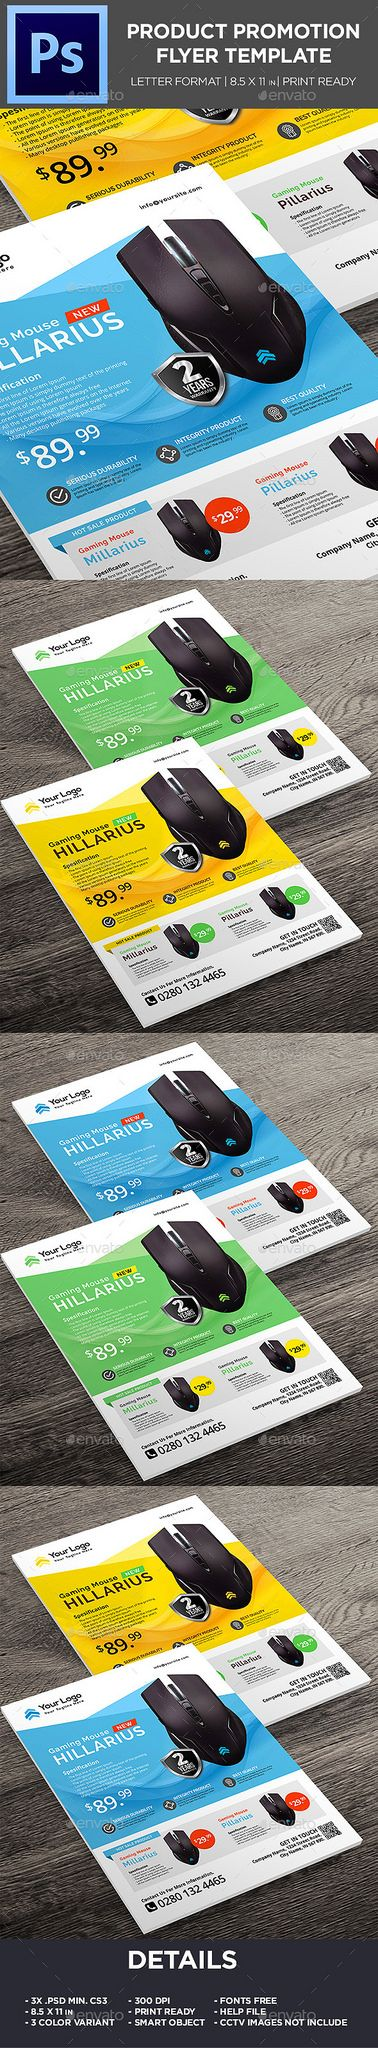 https://flic.kr/p/Yv8aFh | Product Flyer - Mouse Gaming Promotion Flyer | Download >> graphicriver.net/item/mouse-gaming-product-flyer-corporat...